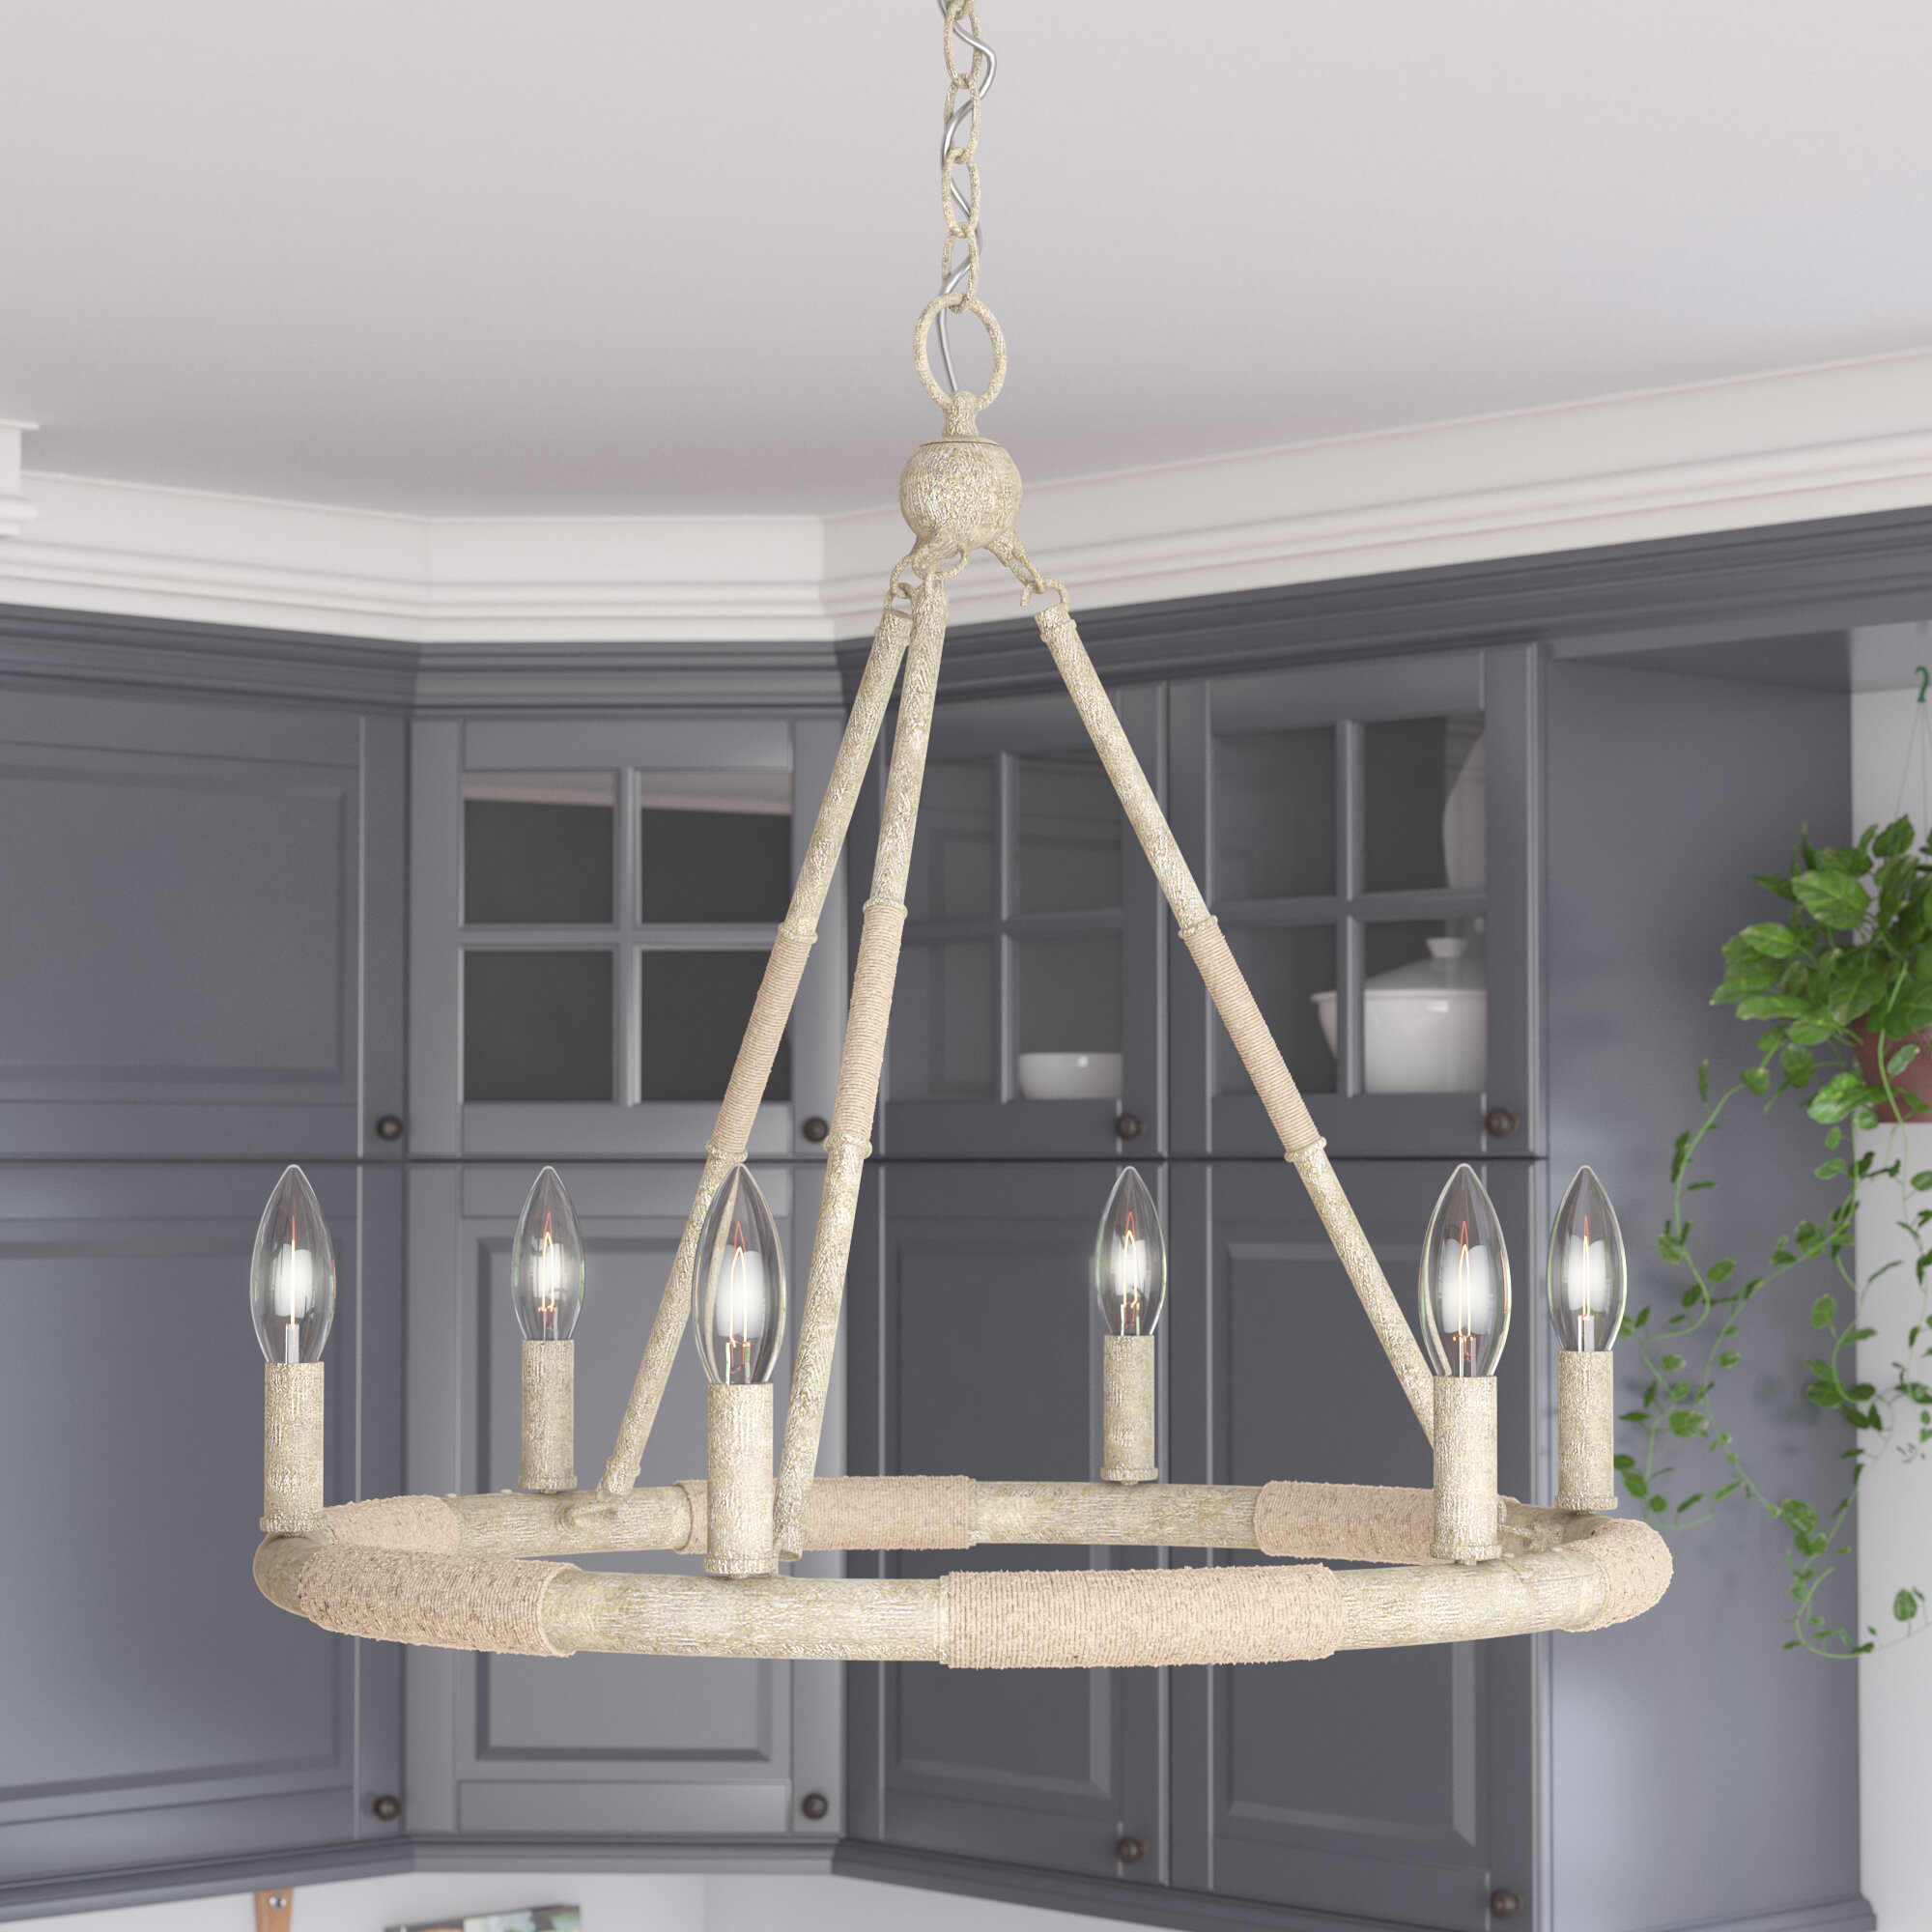 usual lamp bands chandelier floral lighting size teal light fixtures yellow white drum metal purple cool pendant richmond wooden ideas of lights best modern in love decoration full house table shades dining chandeliers shade room bathroom and glass beach top ceiling kitchen impressive for